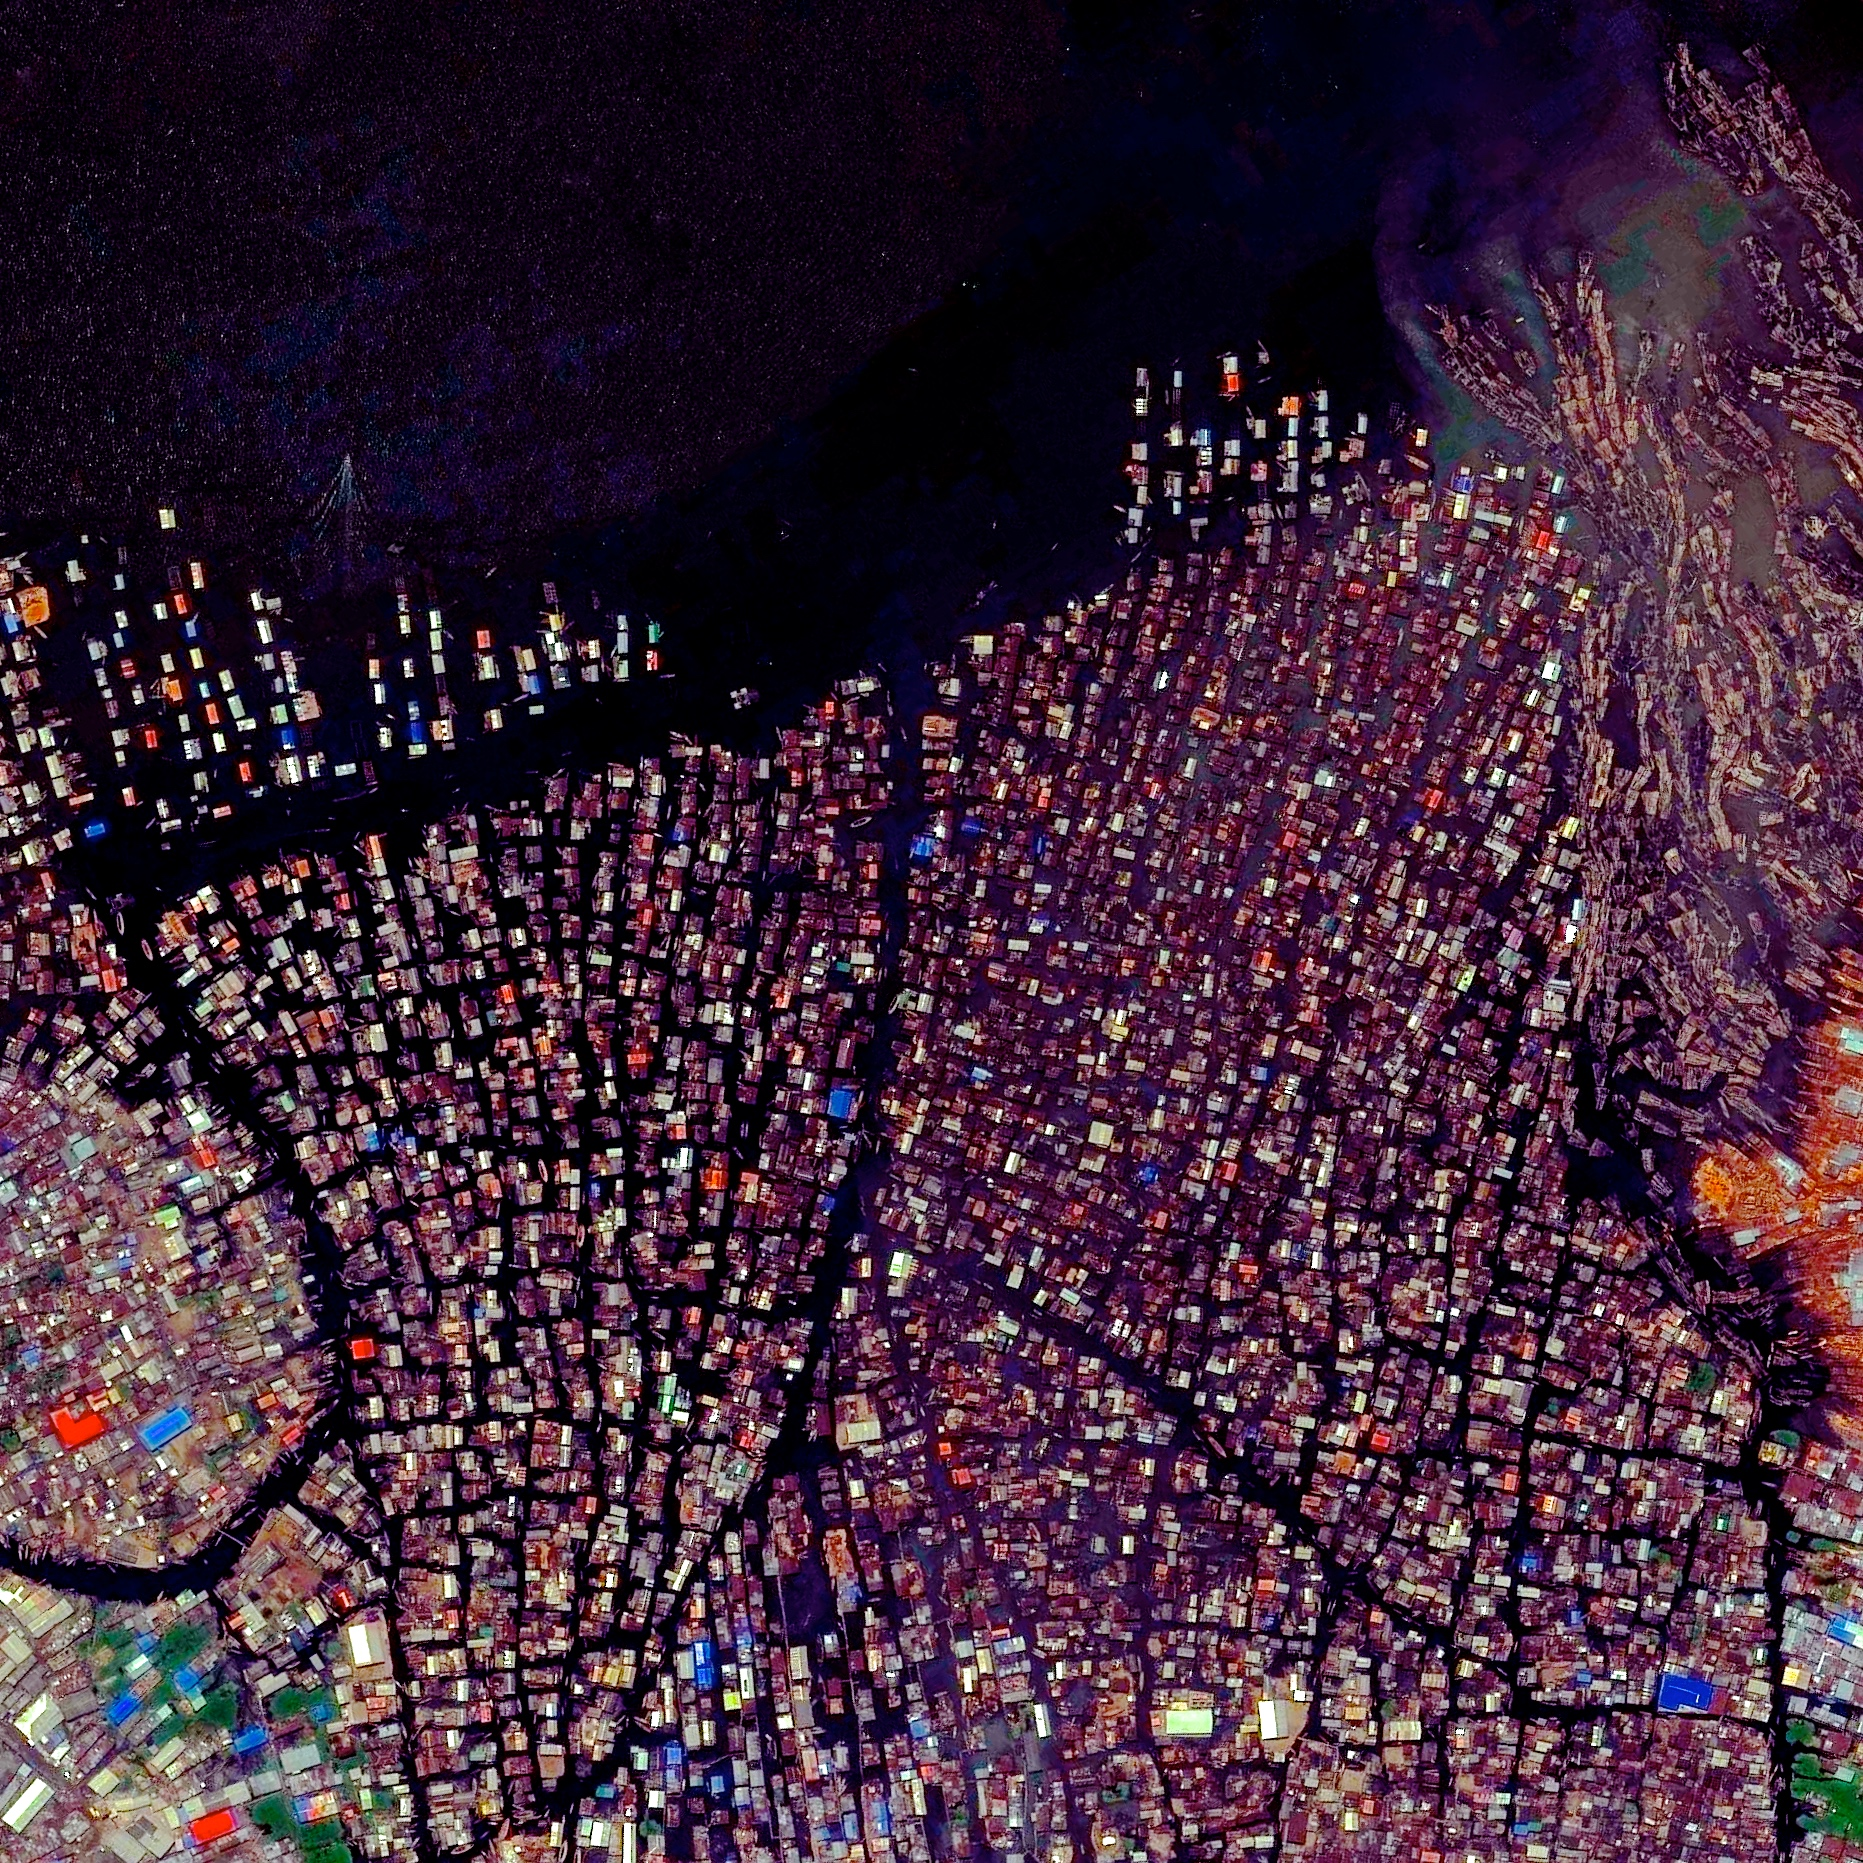 4/28/2015   Makoko   Lagos, Nigeria  6°29′44″N 3°23′39″E    Makoko is a floating village in Lagos, Nigeria. Residents, approximately 85,000 in total, use wooden canoes to navigate the narrow canals and move about the neighborhood. In recent years, there has been great dispute over this area as the government has attempted to demolish homes to allow for the construction of more valuable, waterfront real estate.